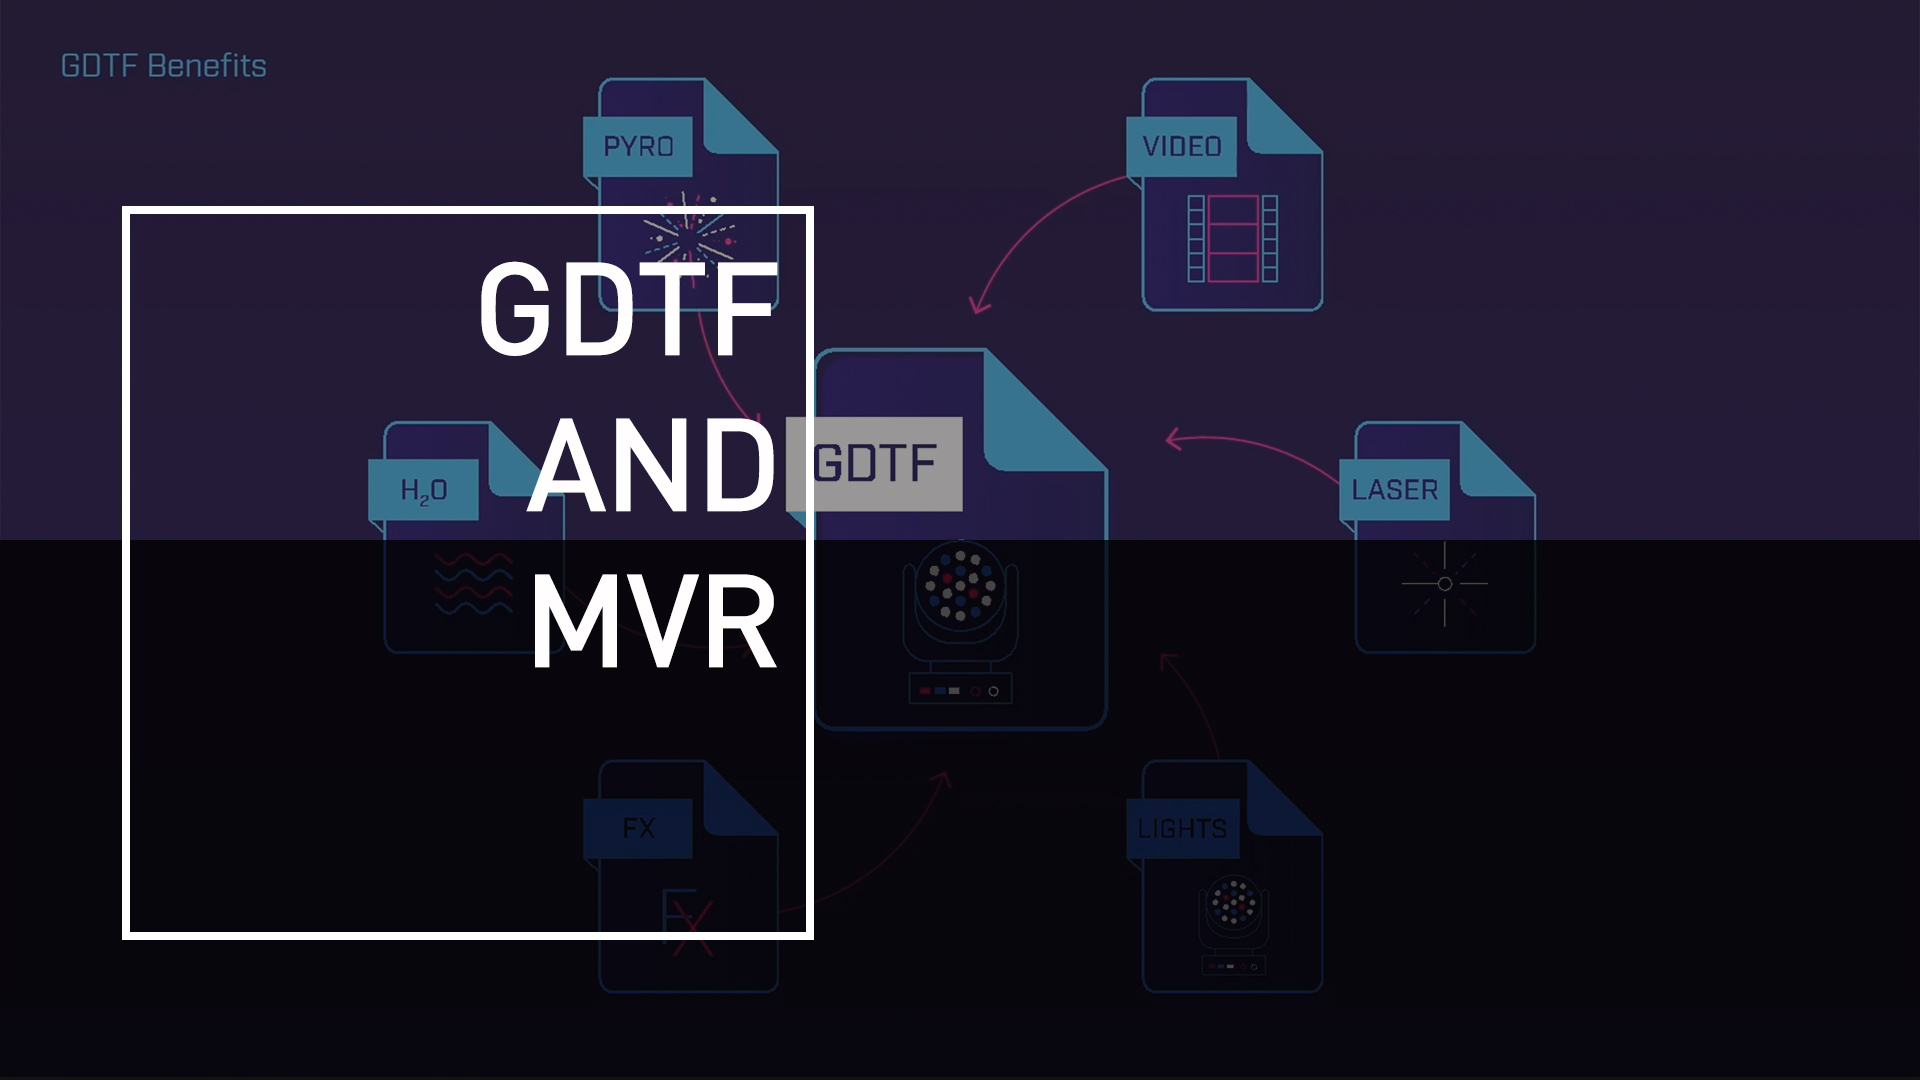 thumbnail-WVSL-webinar-gdtf-and-mvr